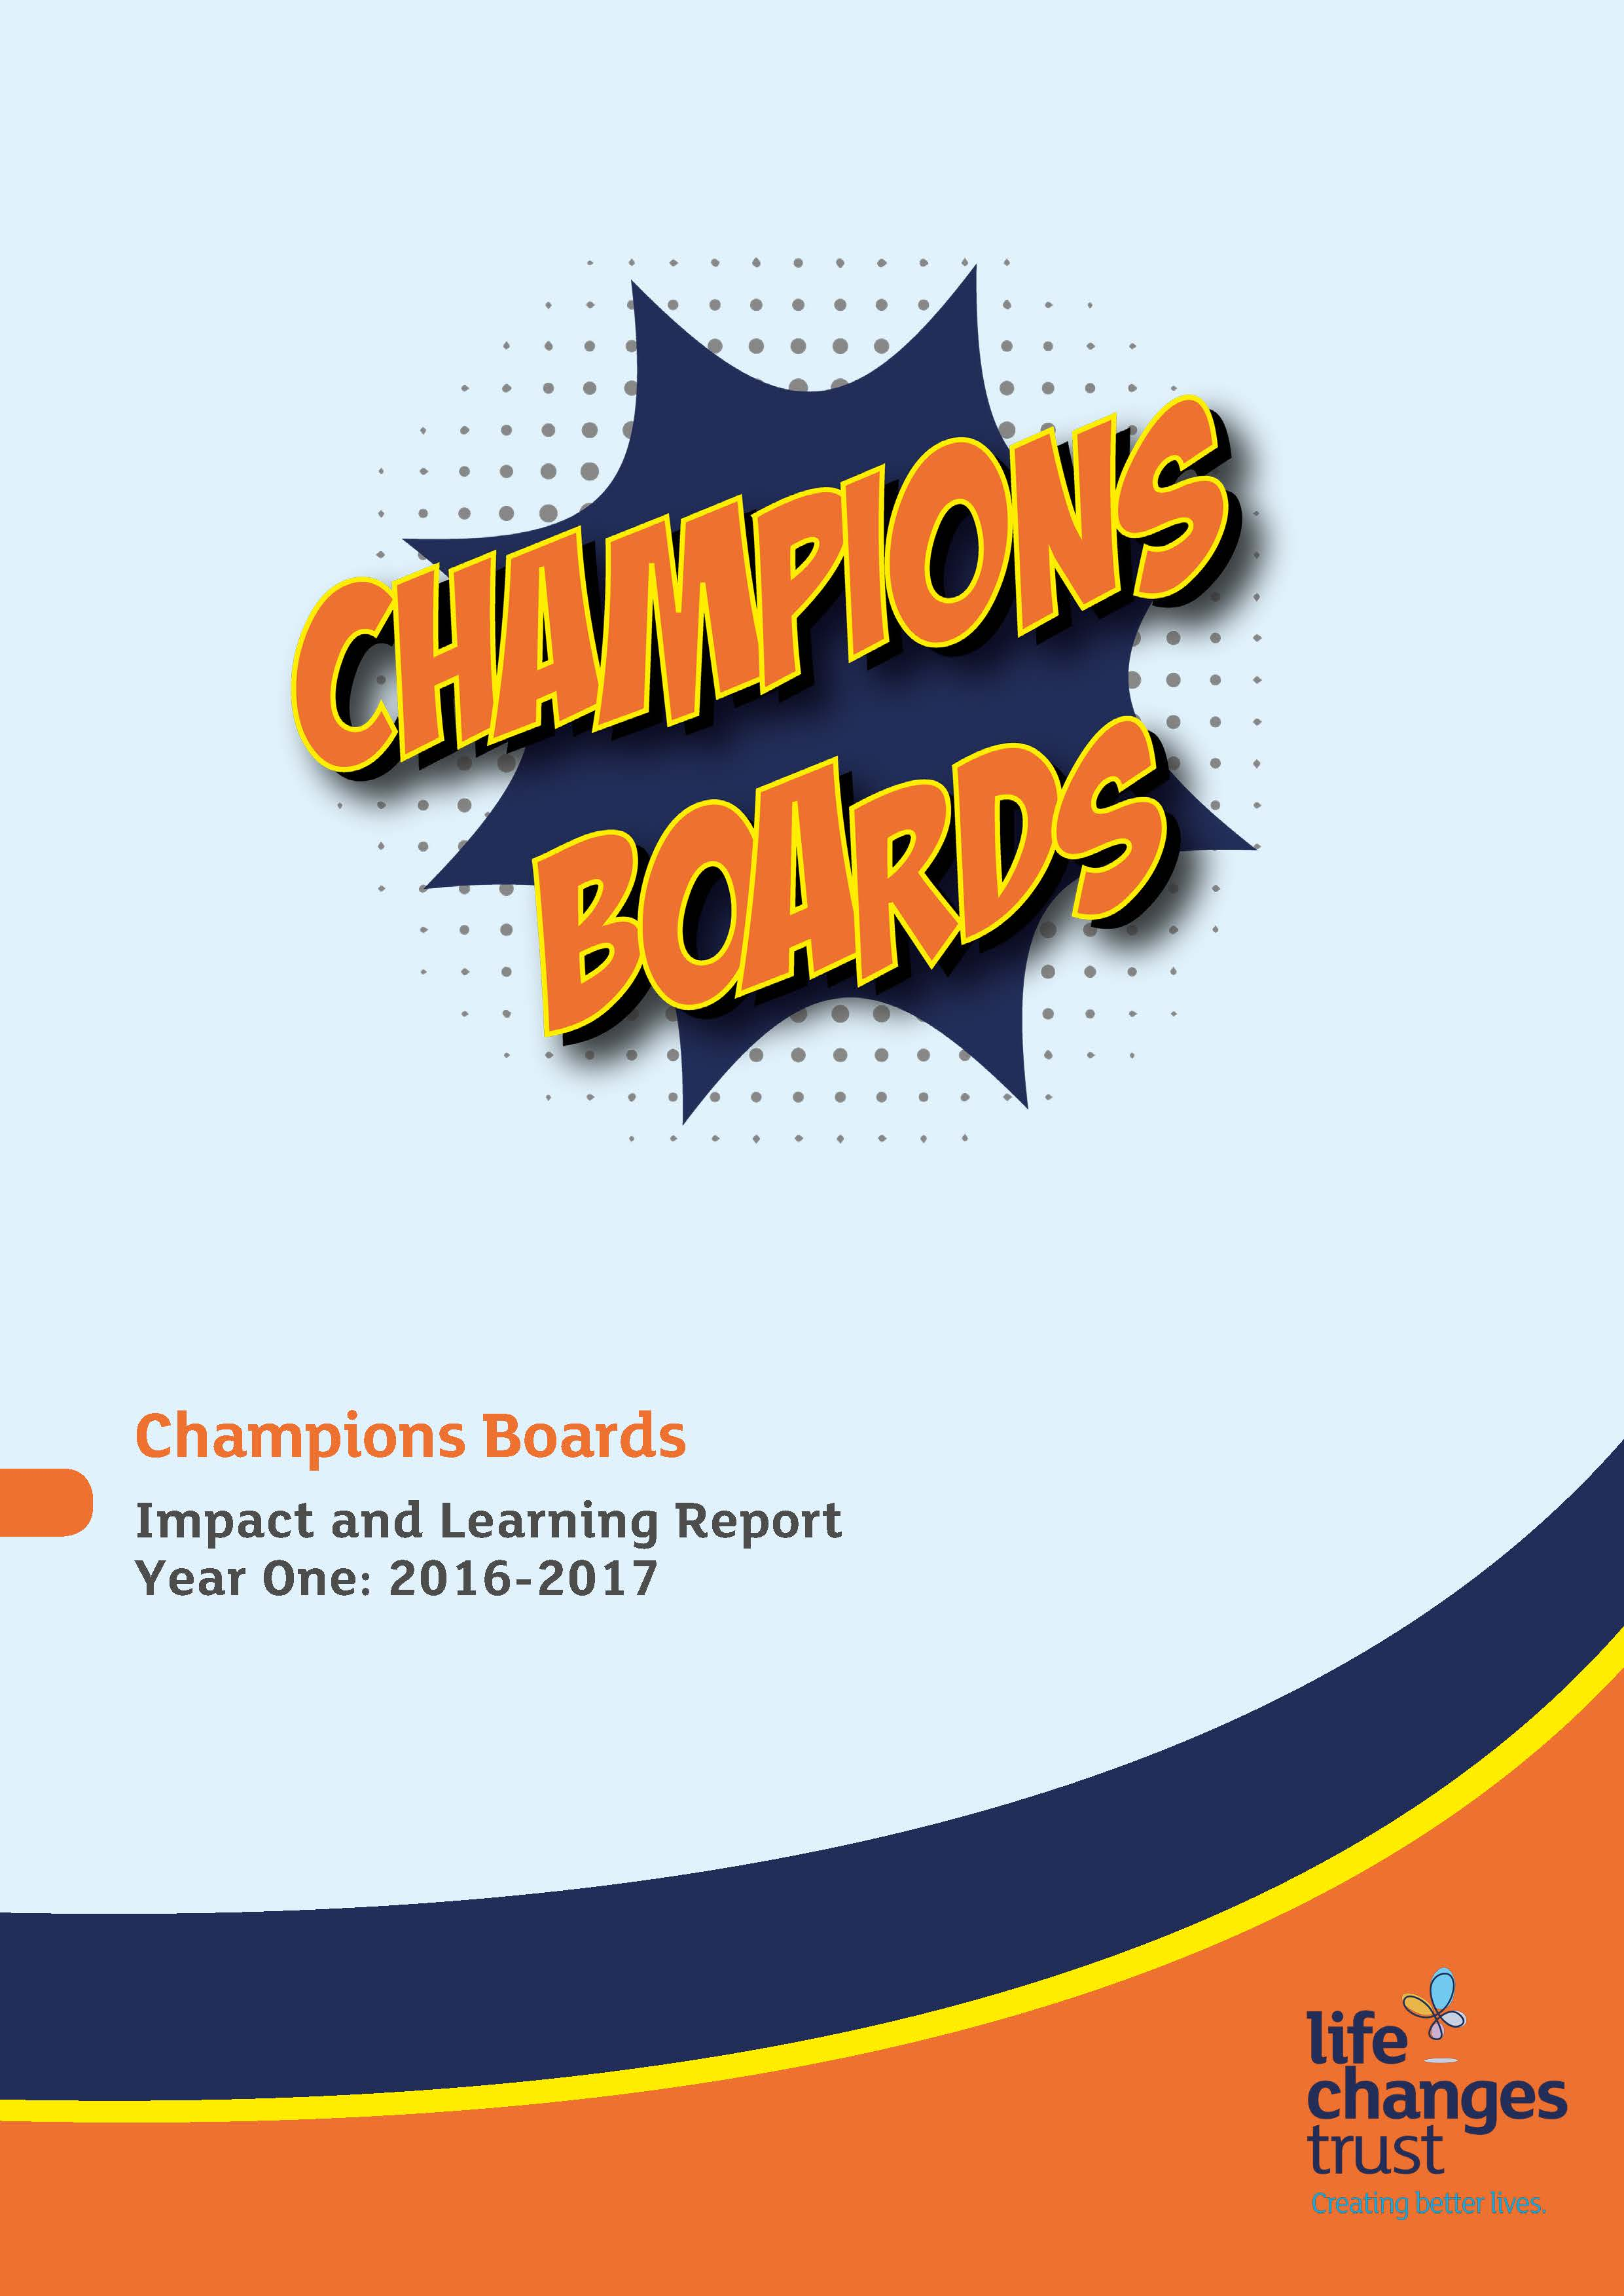 Champions Boards - Impact and Learning Report (2016 - 2017)